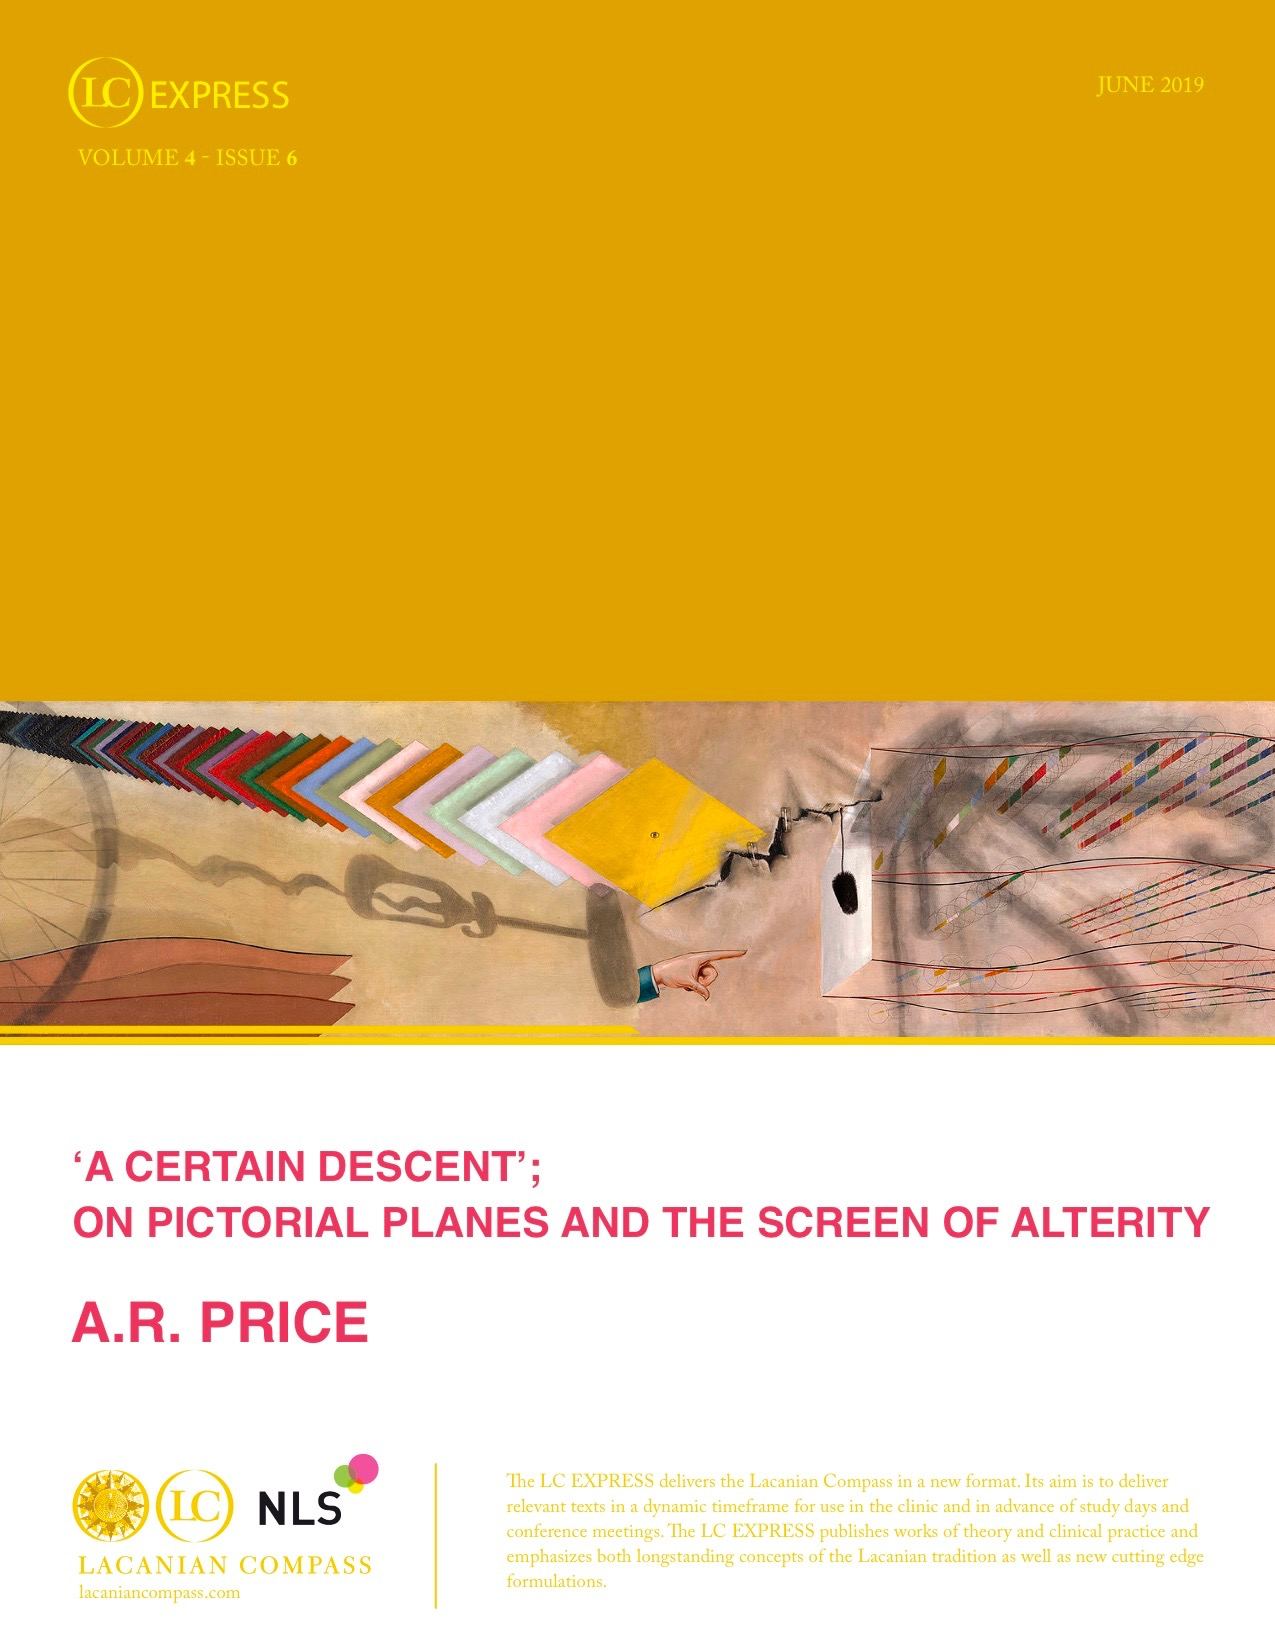 LCExpress Volume 4 / Issue 6  'A CERTAIN DESCENT'; ON PICTORIAL PLANES AND THE SCREEN OF ALTERITY   Adrian R. Price